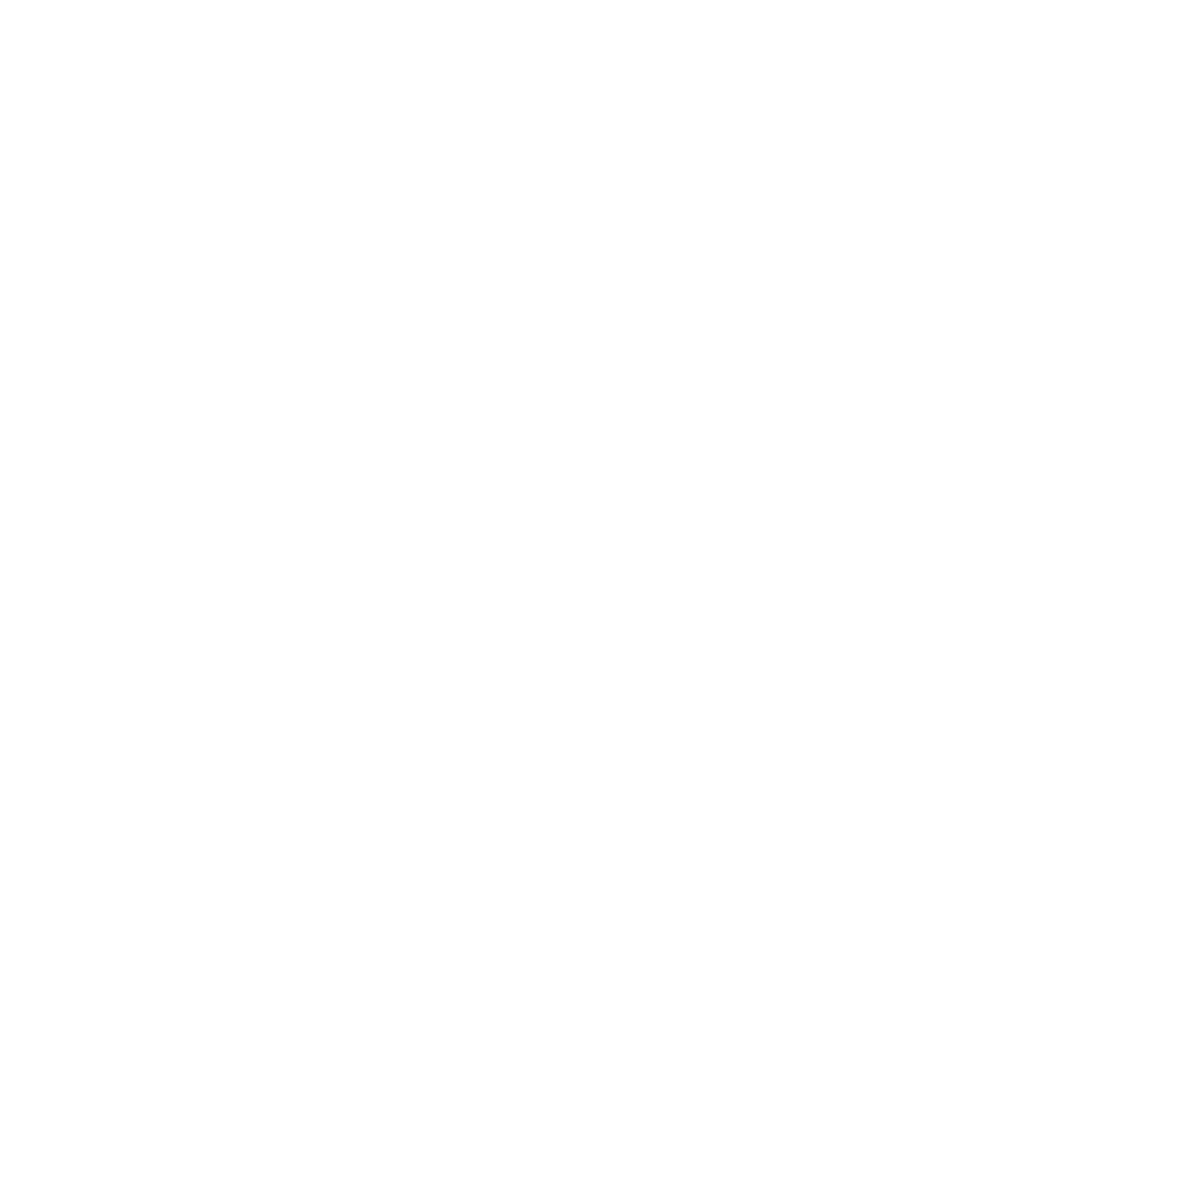 Financial clipart dividend. Investor overview for relations